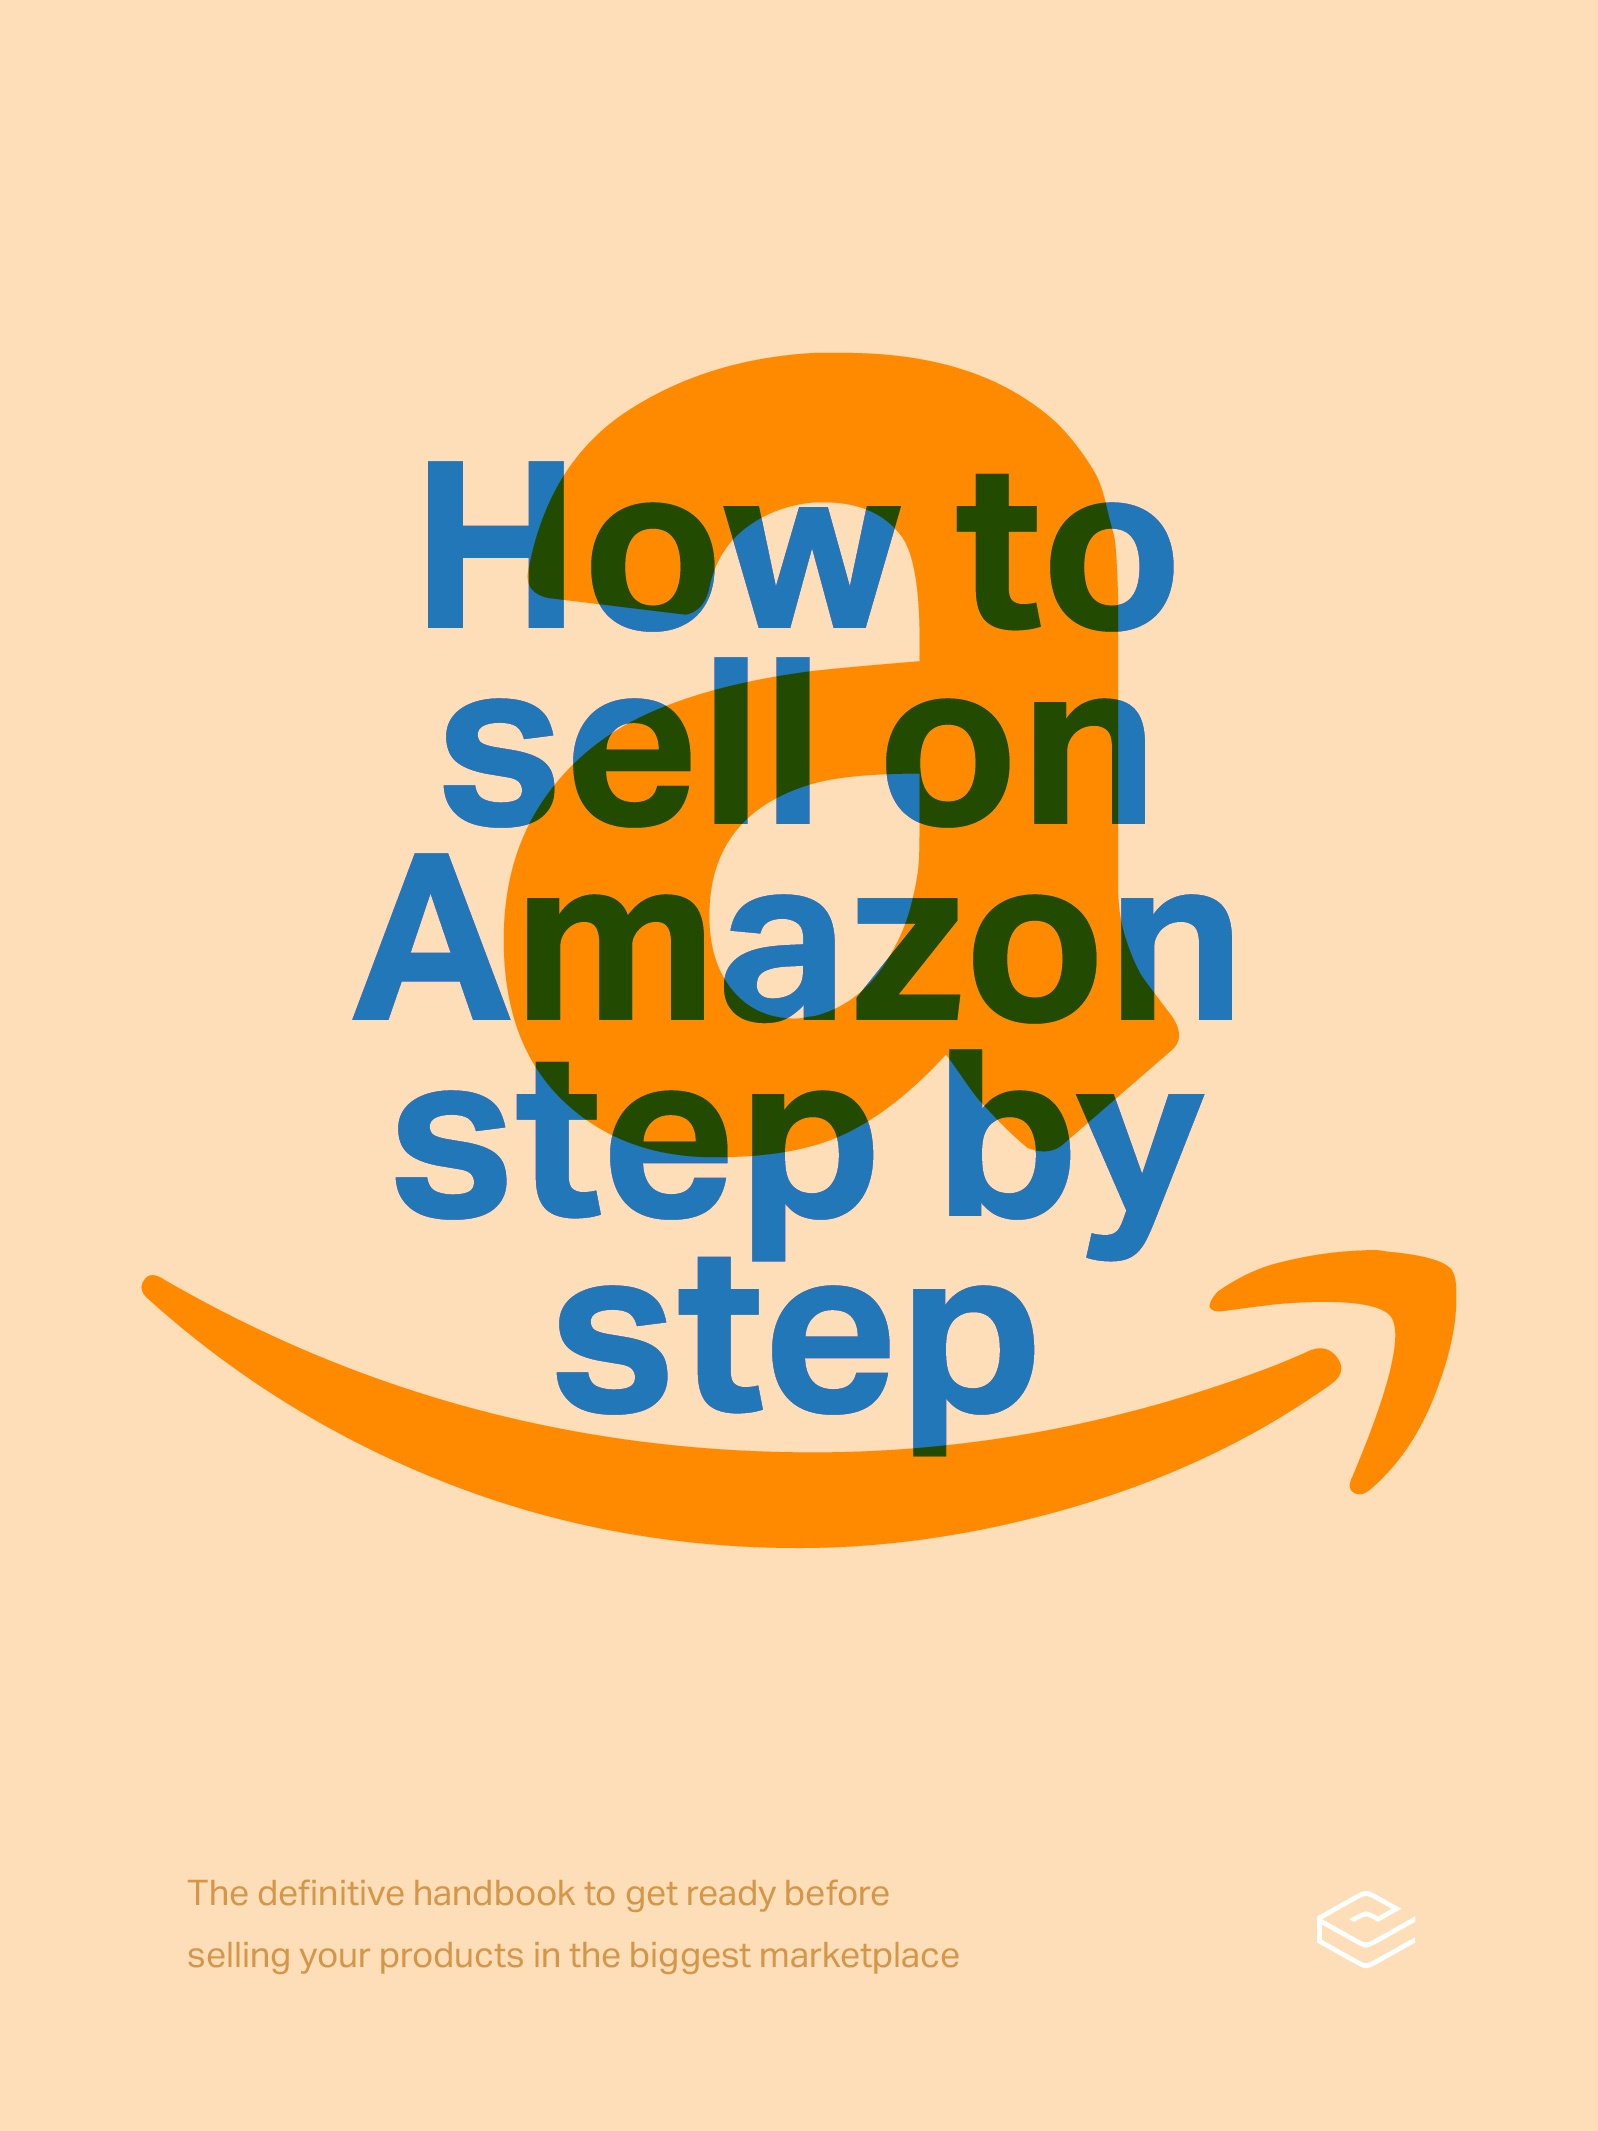 Portada - How to sell on Amazon.jpg